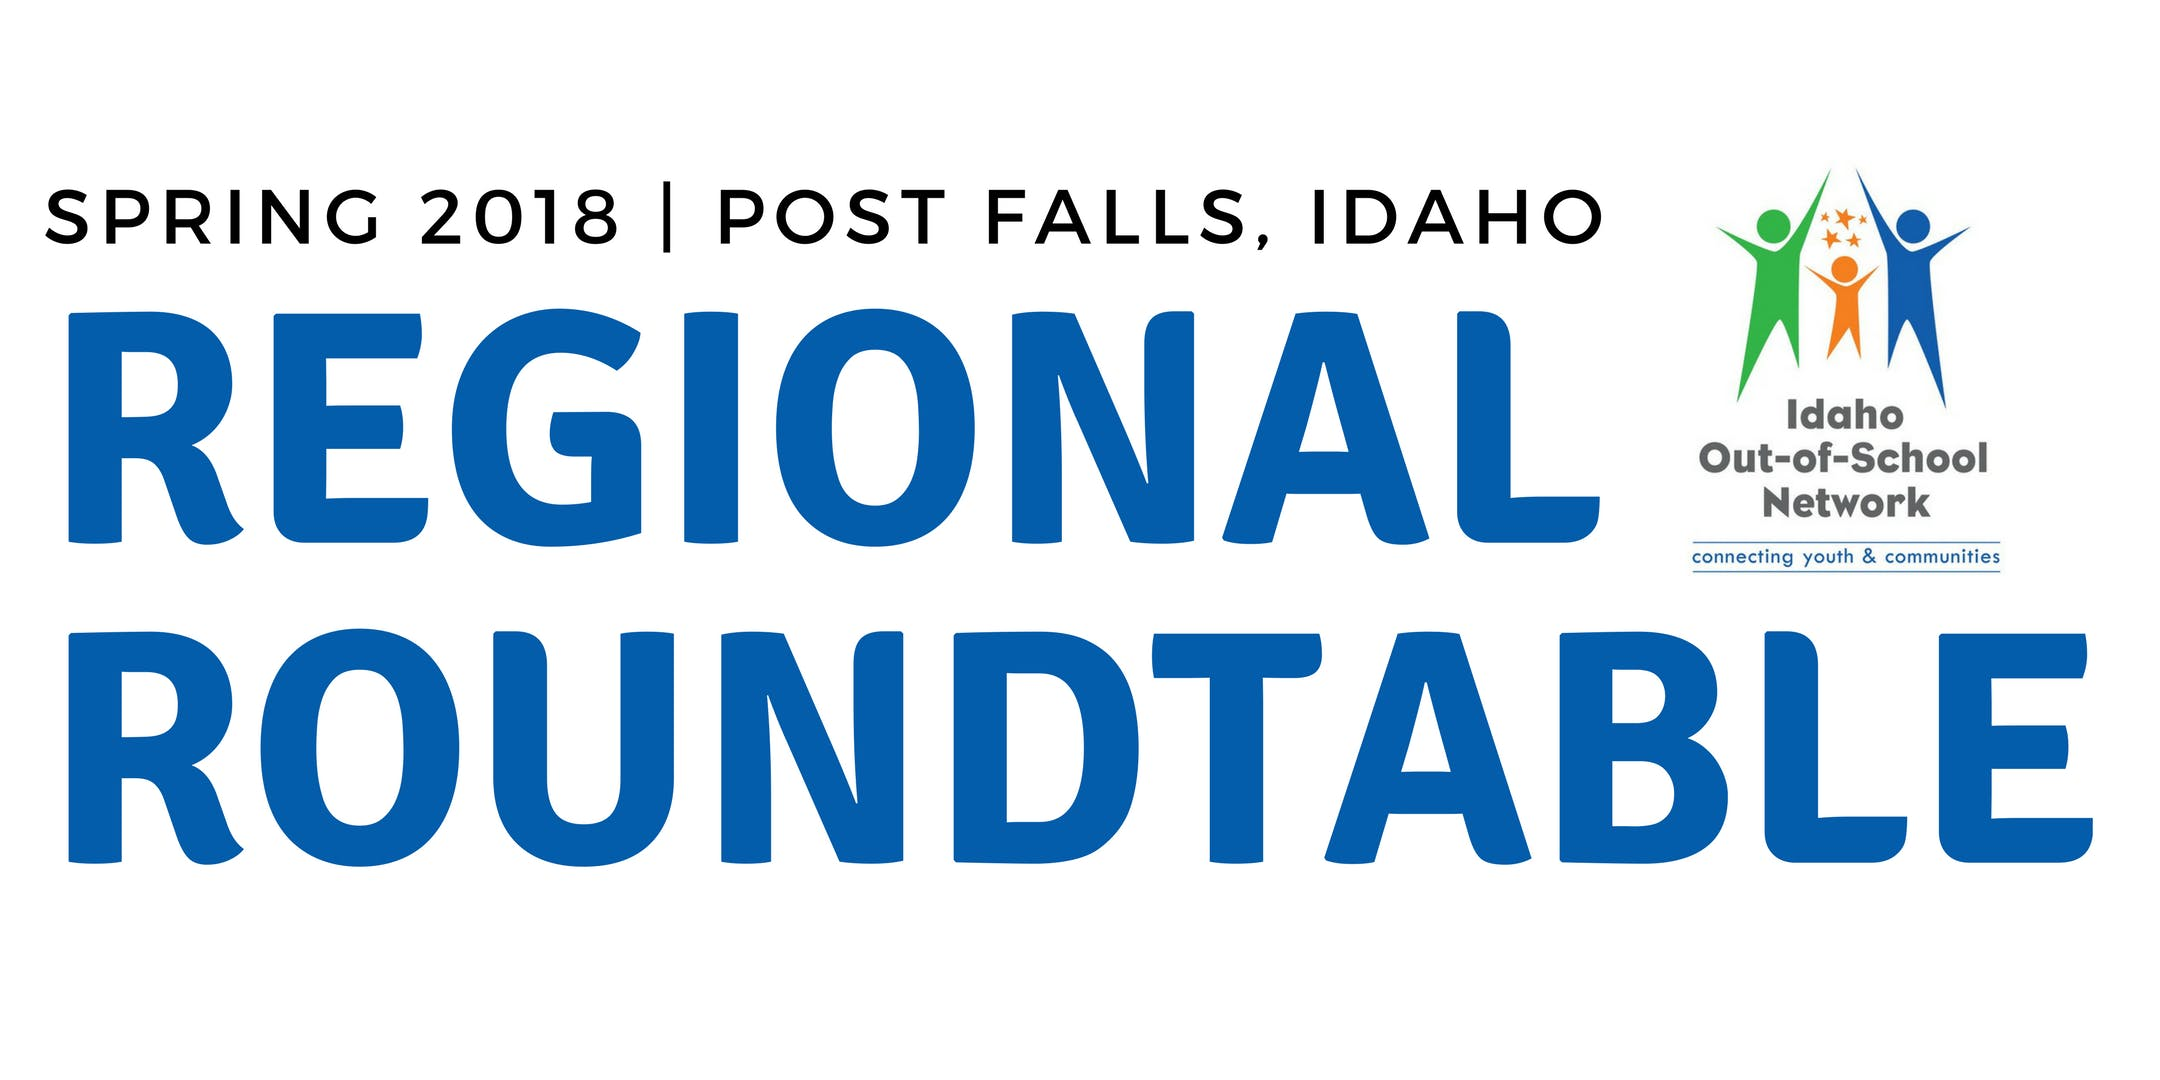 Regional Roundtable Enriching Out-of-School time for Youth Post Falls Idaho